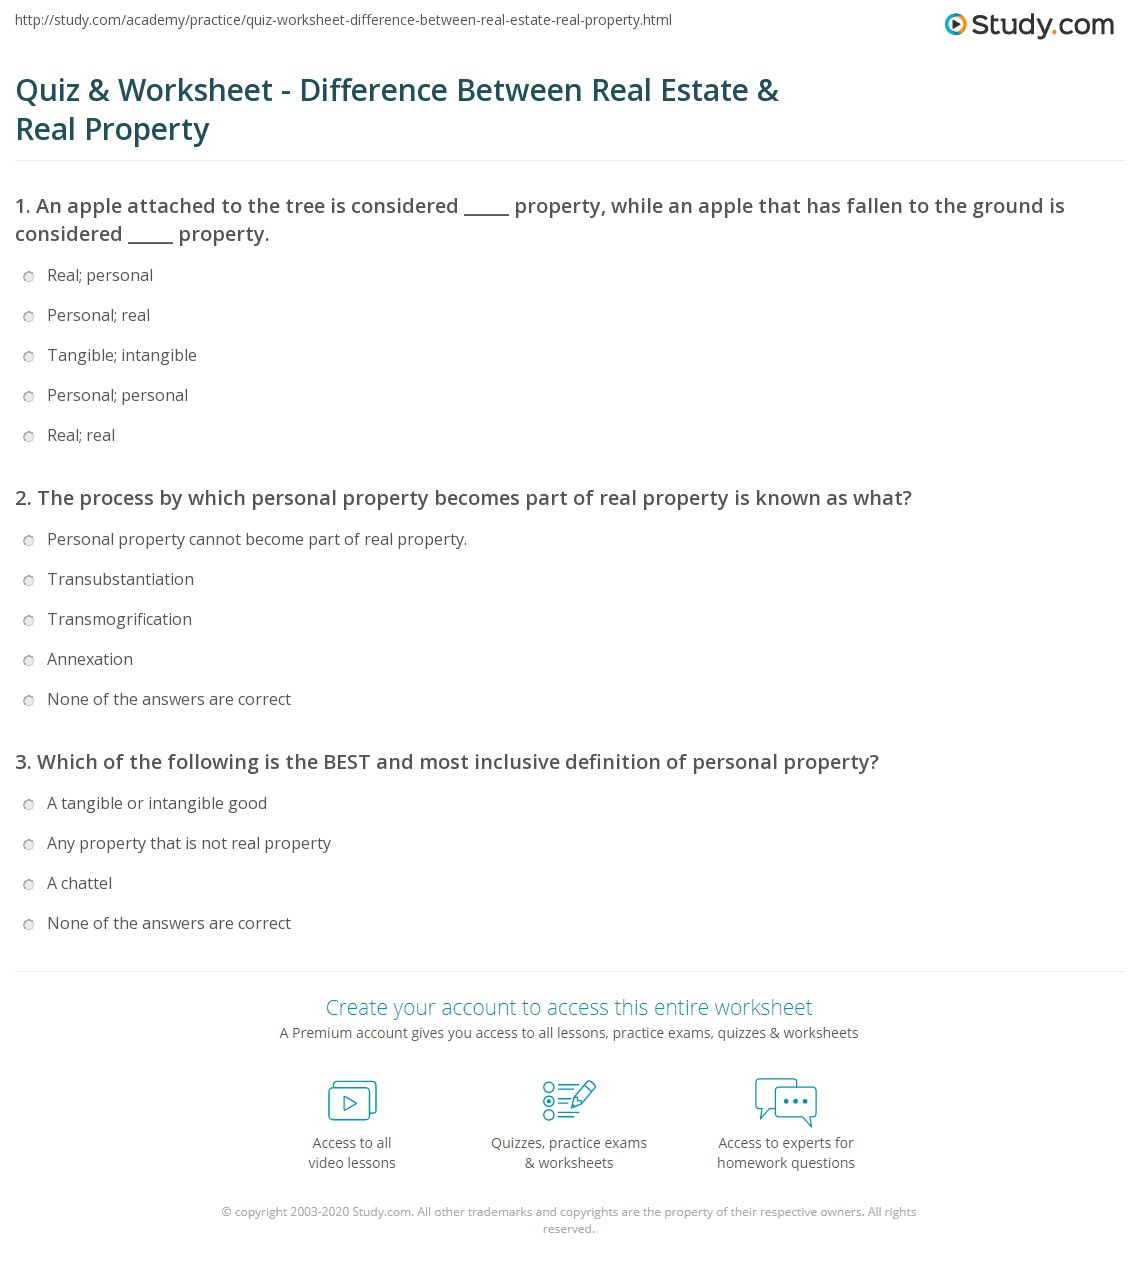 worksheet Personal Exemption Worksheet quiz worksheet difference between real estate property print vs differences terms worksheet